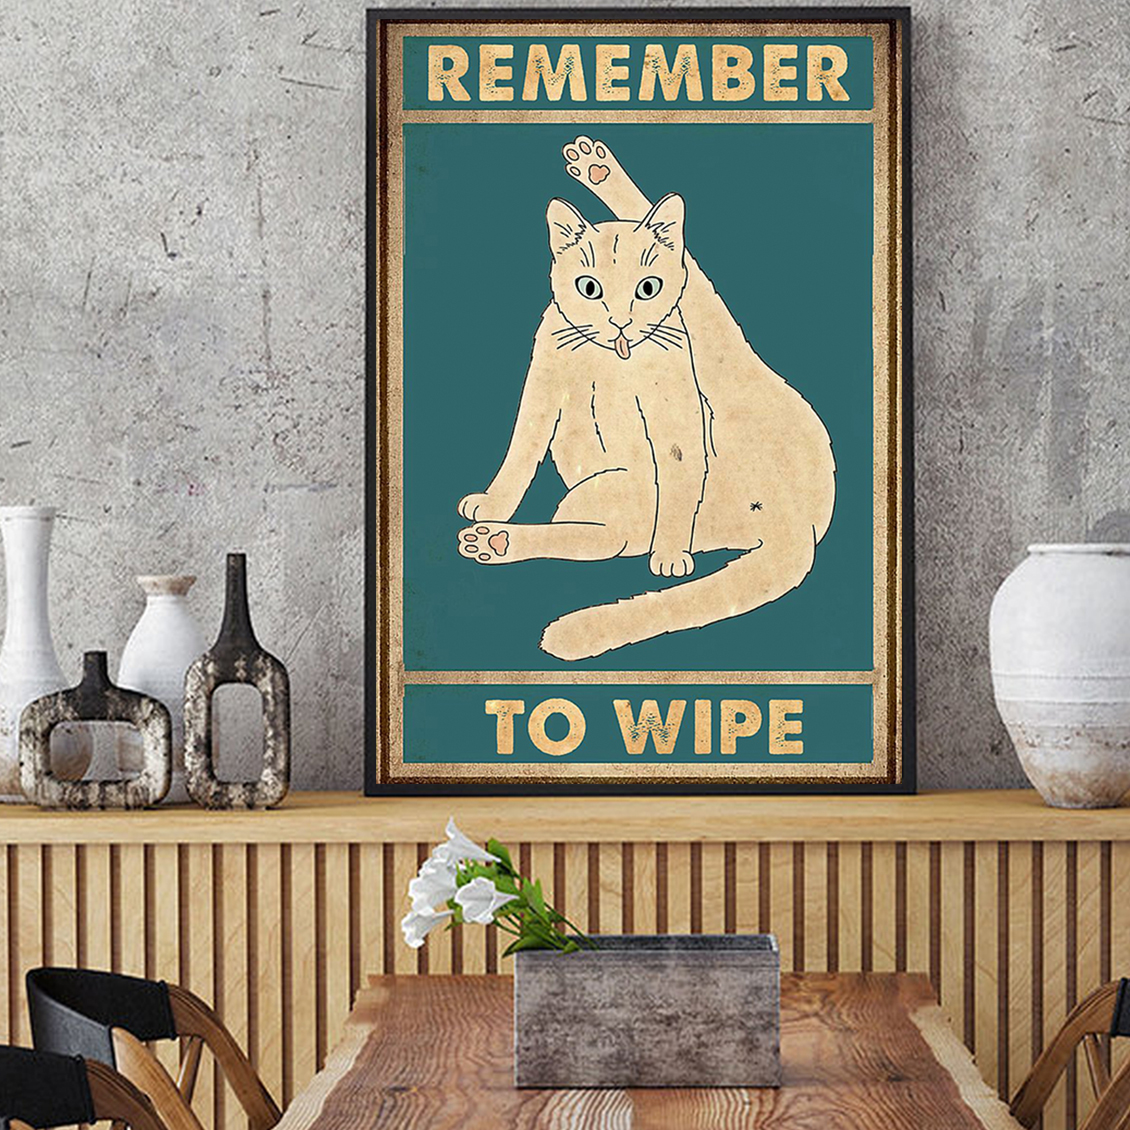 Remember to wipe cat poster A2